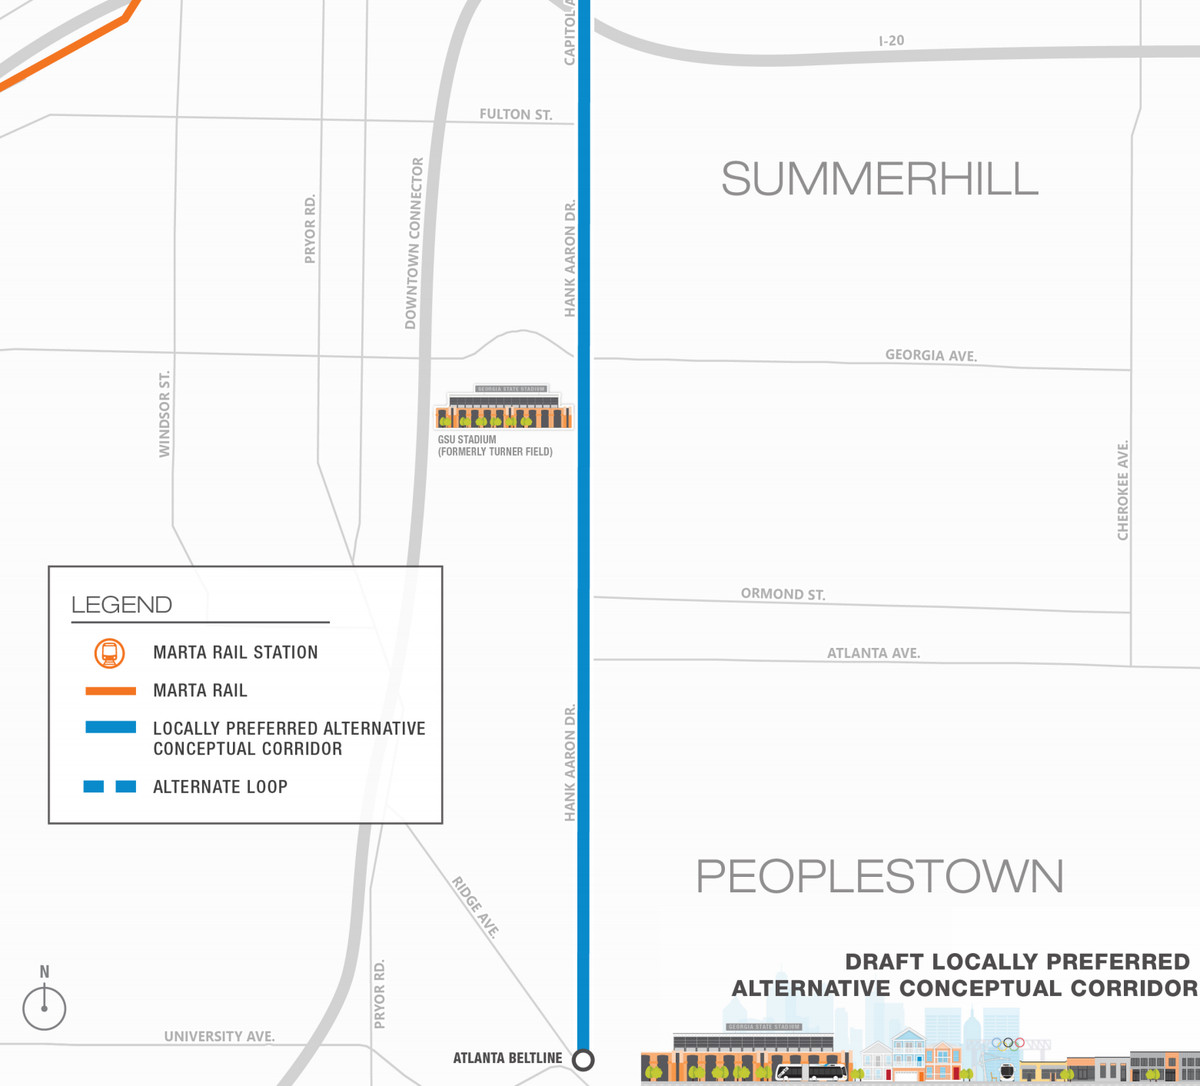 A map shows how the BRT line is planned for Capitol Avenue and Hank Aaron Drive.